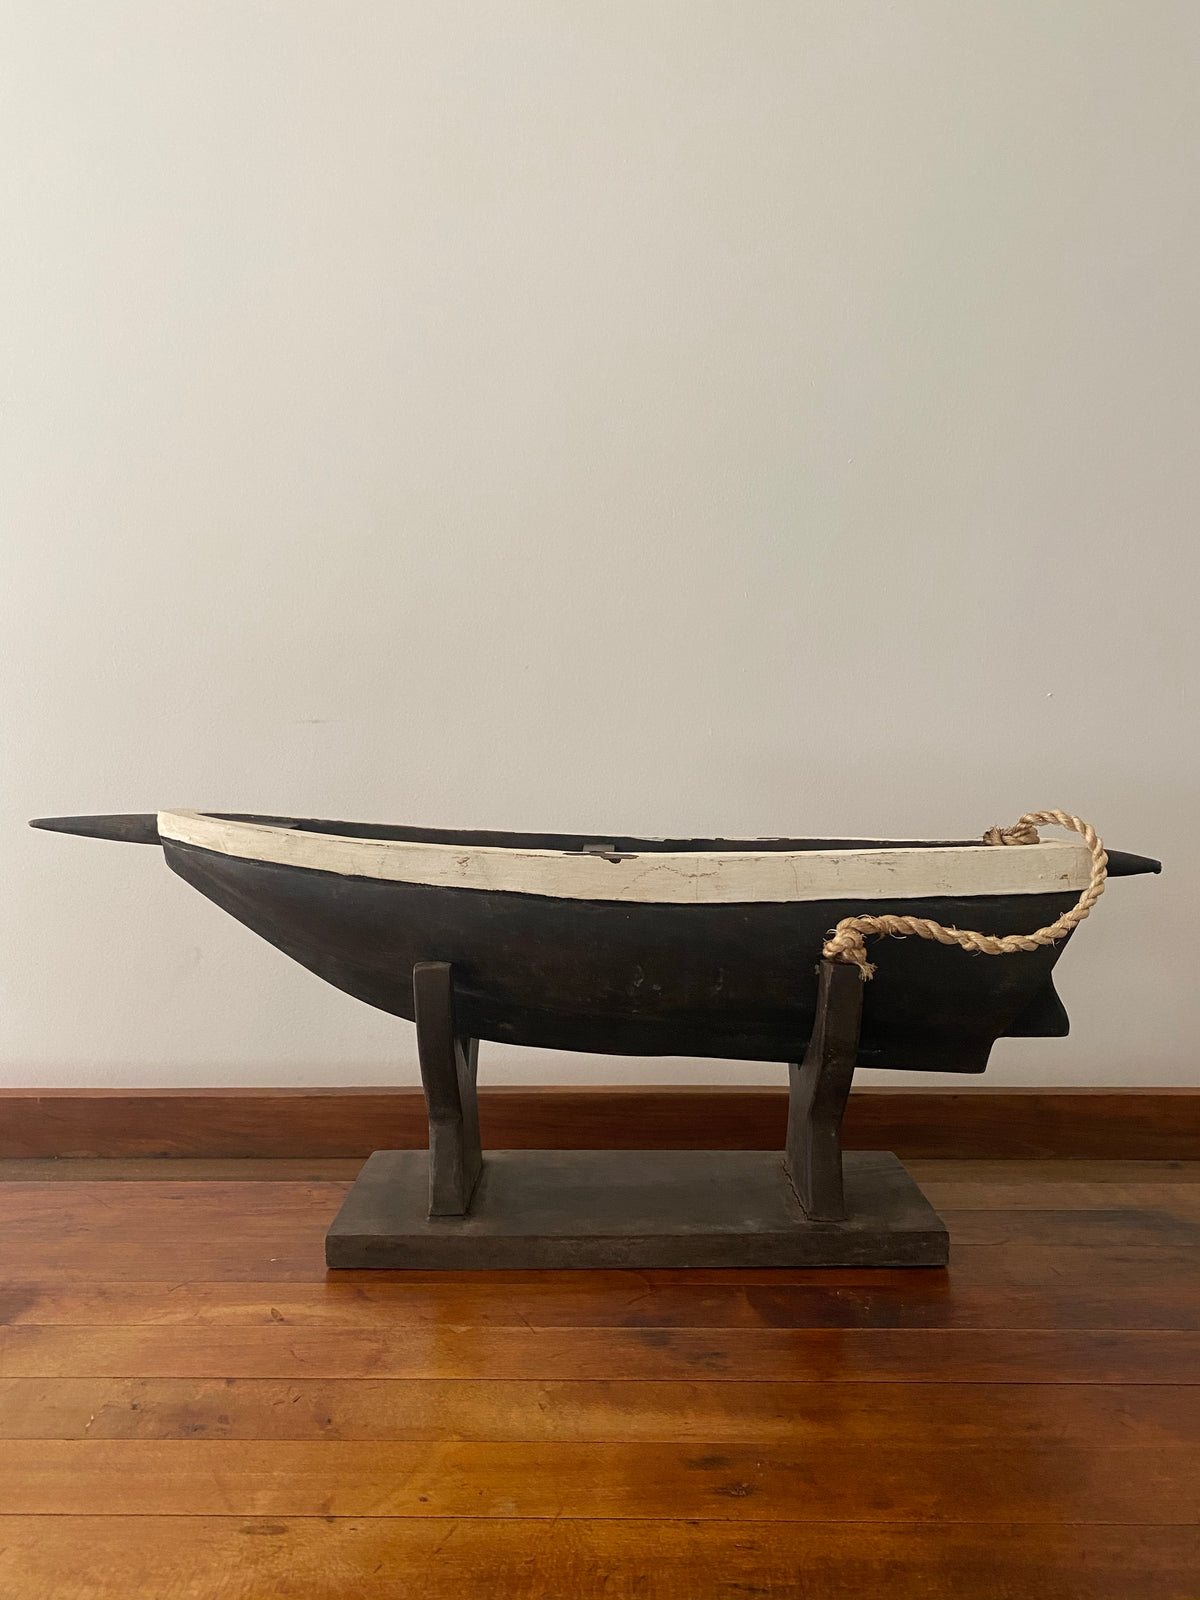 Antique Wooden Boat + Base